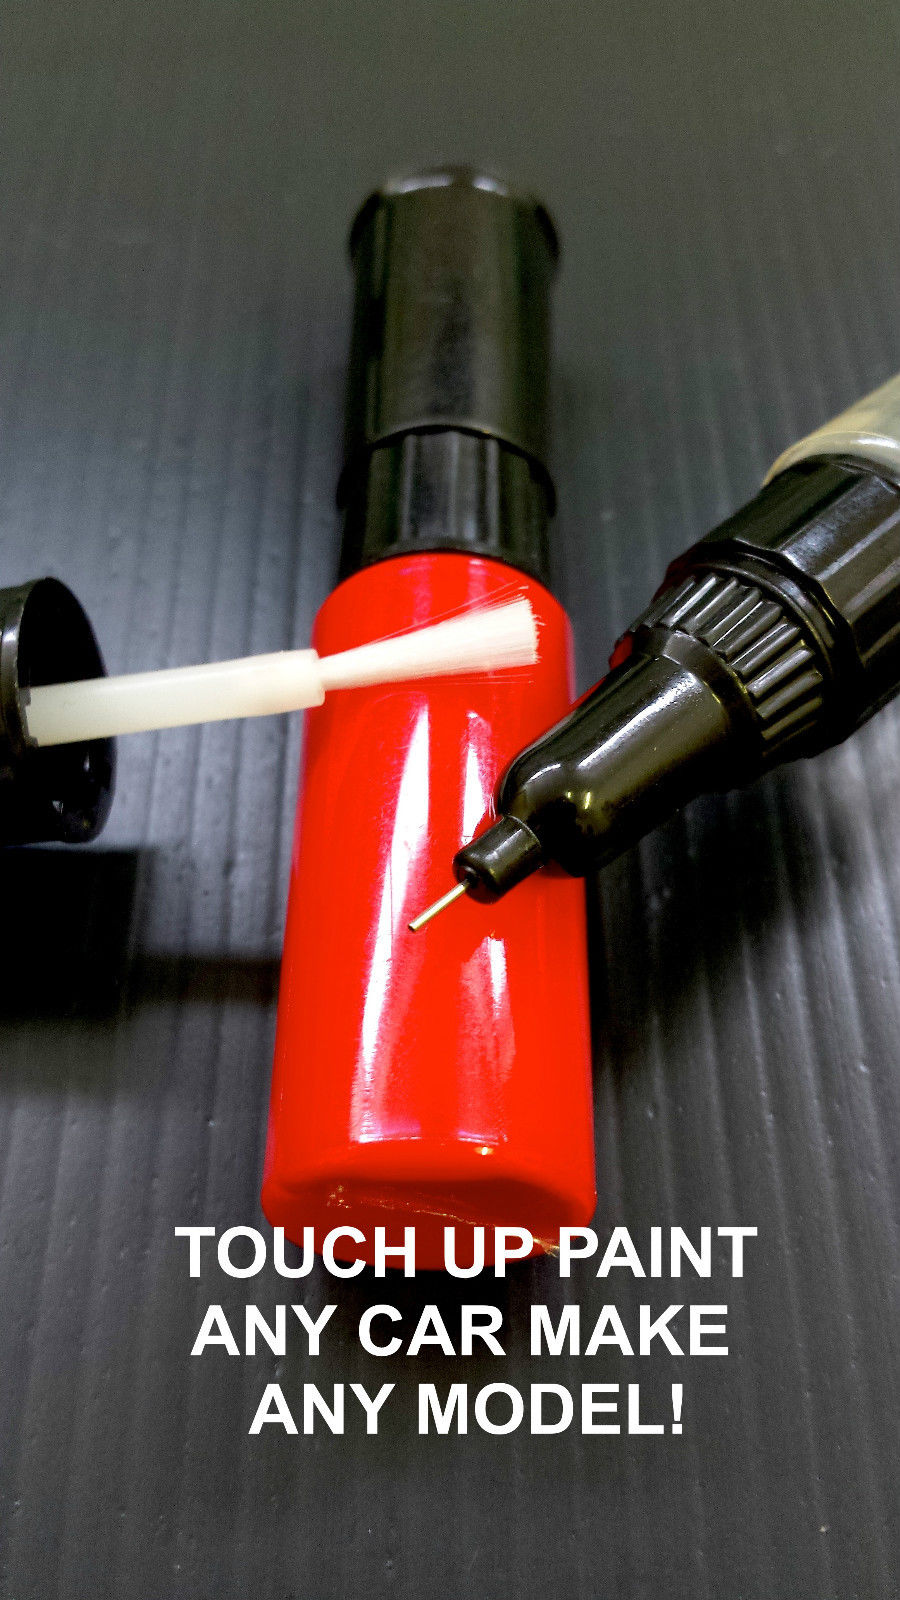 MITSUBISHI TOUCH UP PAINT ALL CARS ALL MODELS MADE TO YOUR COLOUR CODE